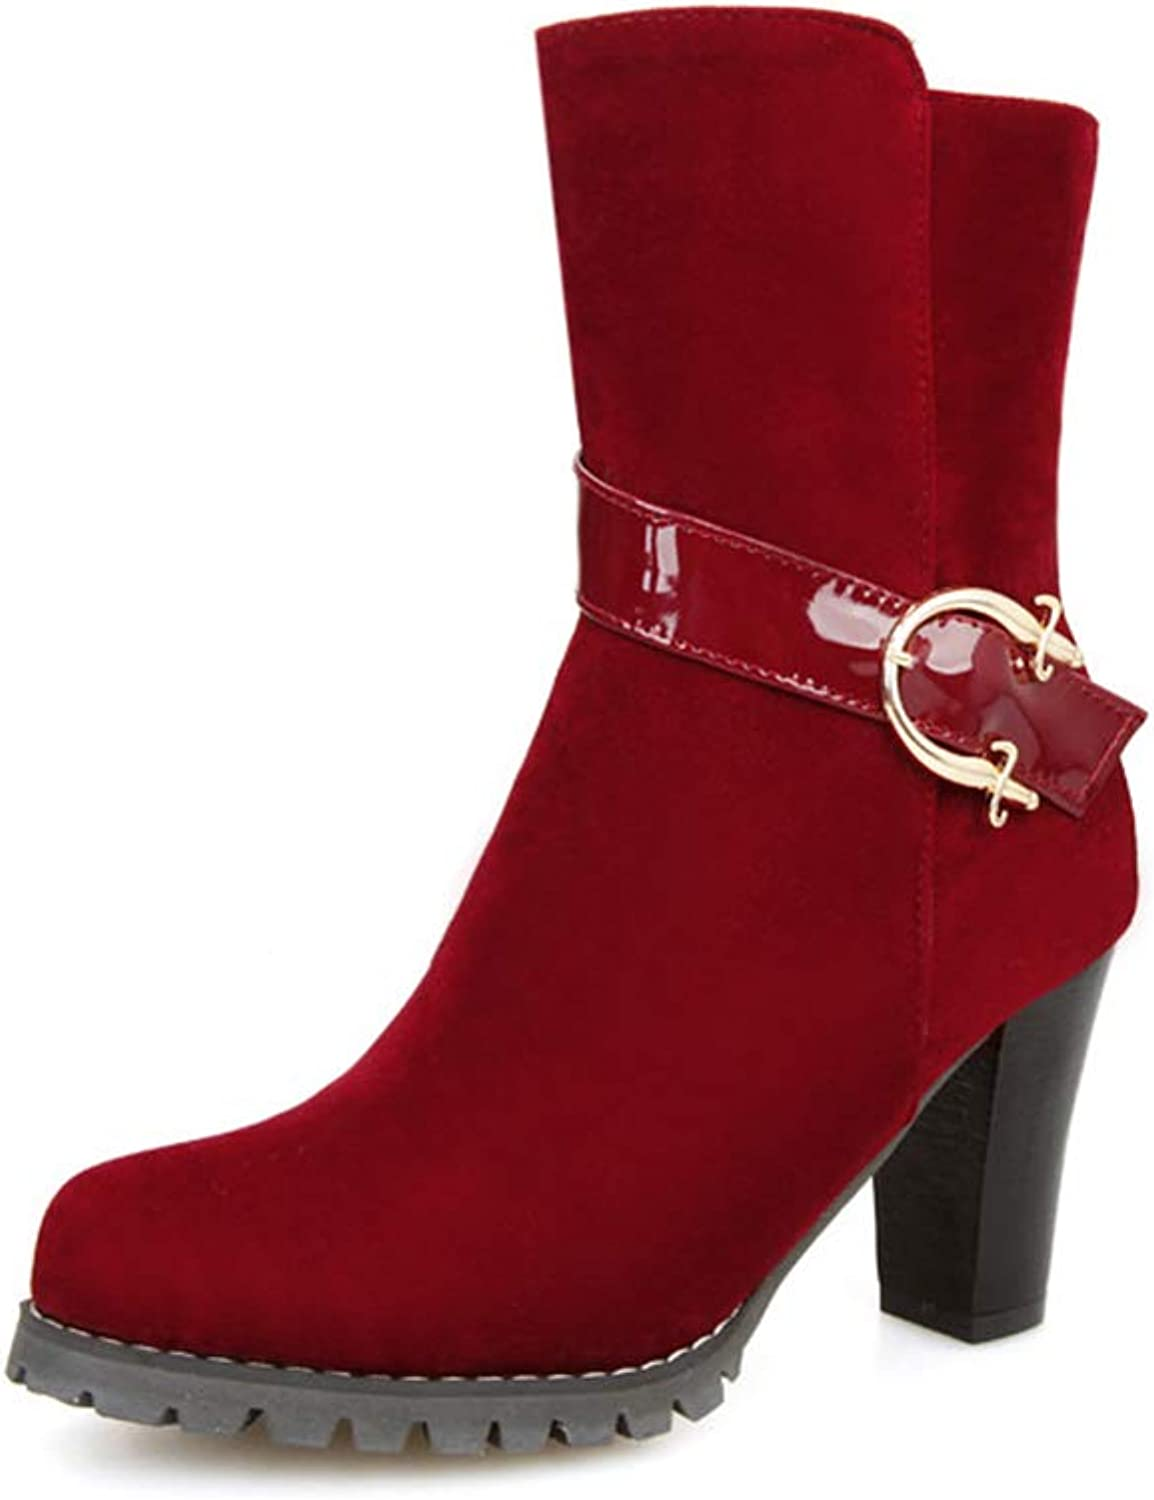 Women's Booties, Fall Winter New Thick Heel High Heel Suede Fashion Boots Ladies Mid Heel Ankle Boots (color   A, Size   39)